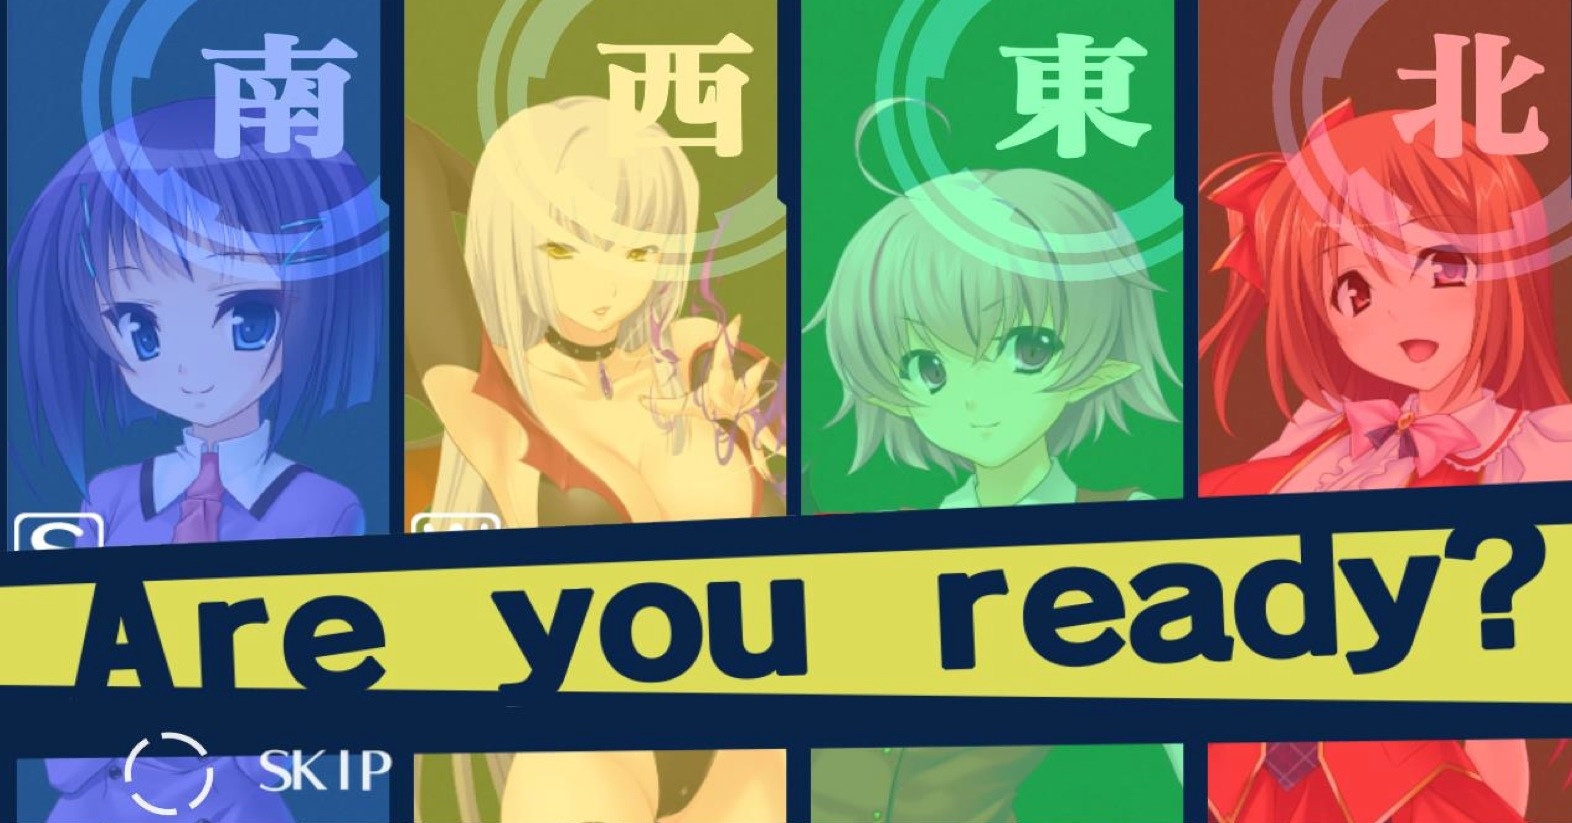 Mahjong Pretty Girls Battle is here - Are you Ready?